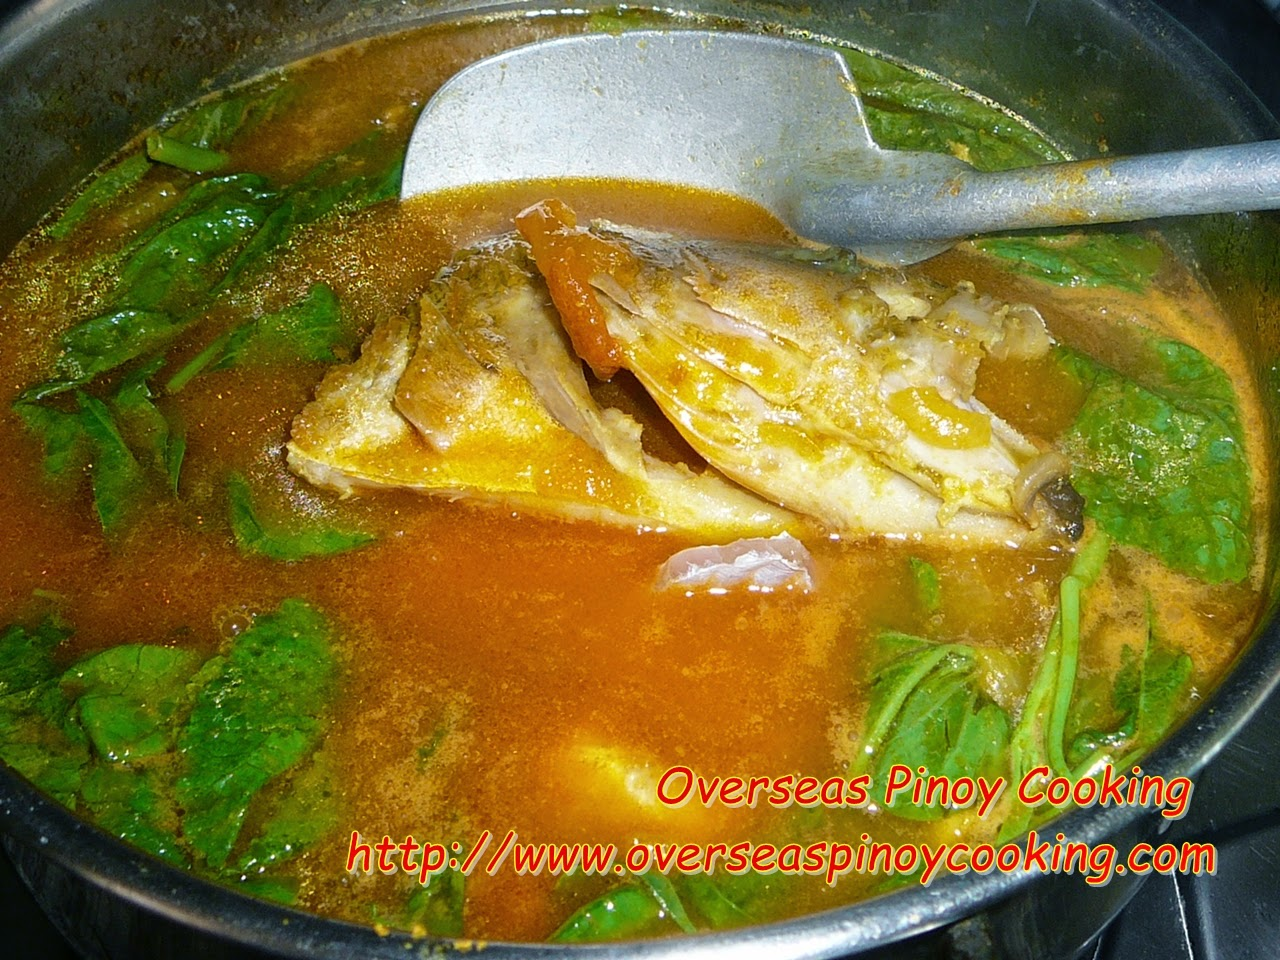 Red Sinigang na Maya-maya sa Miso - Cooking Procedure